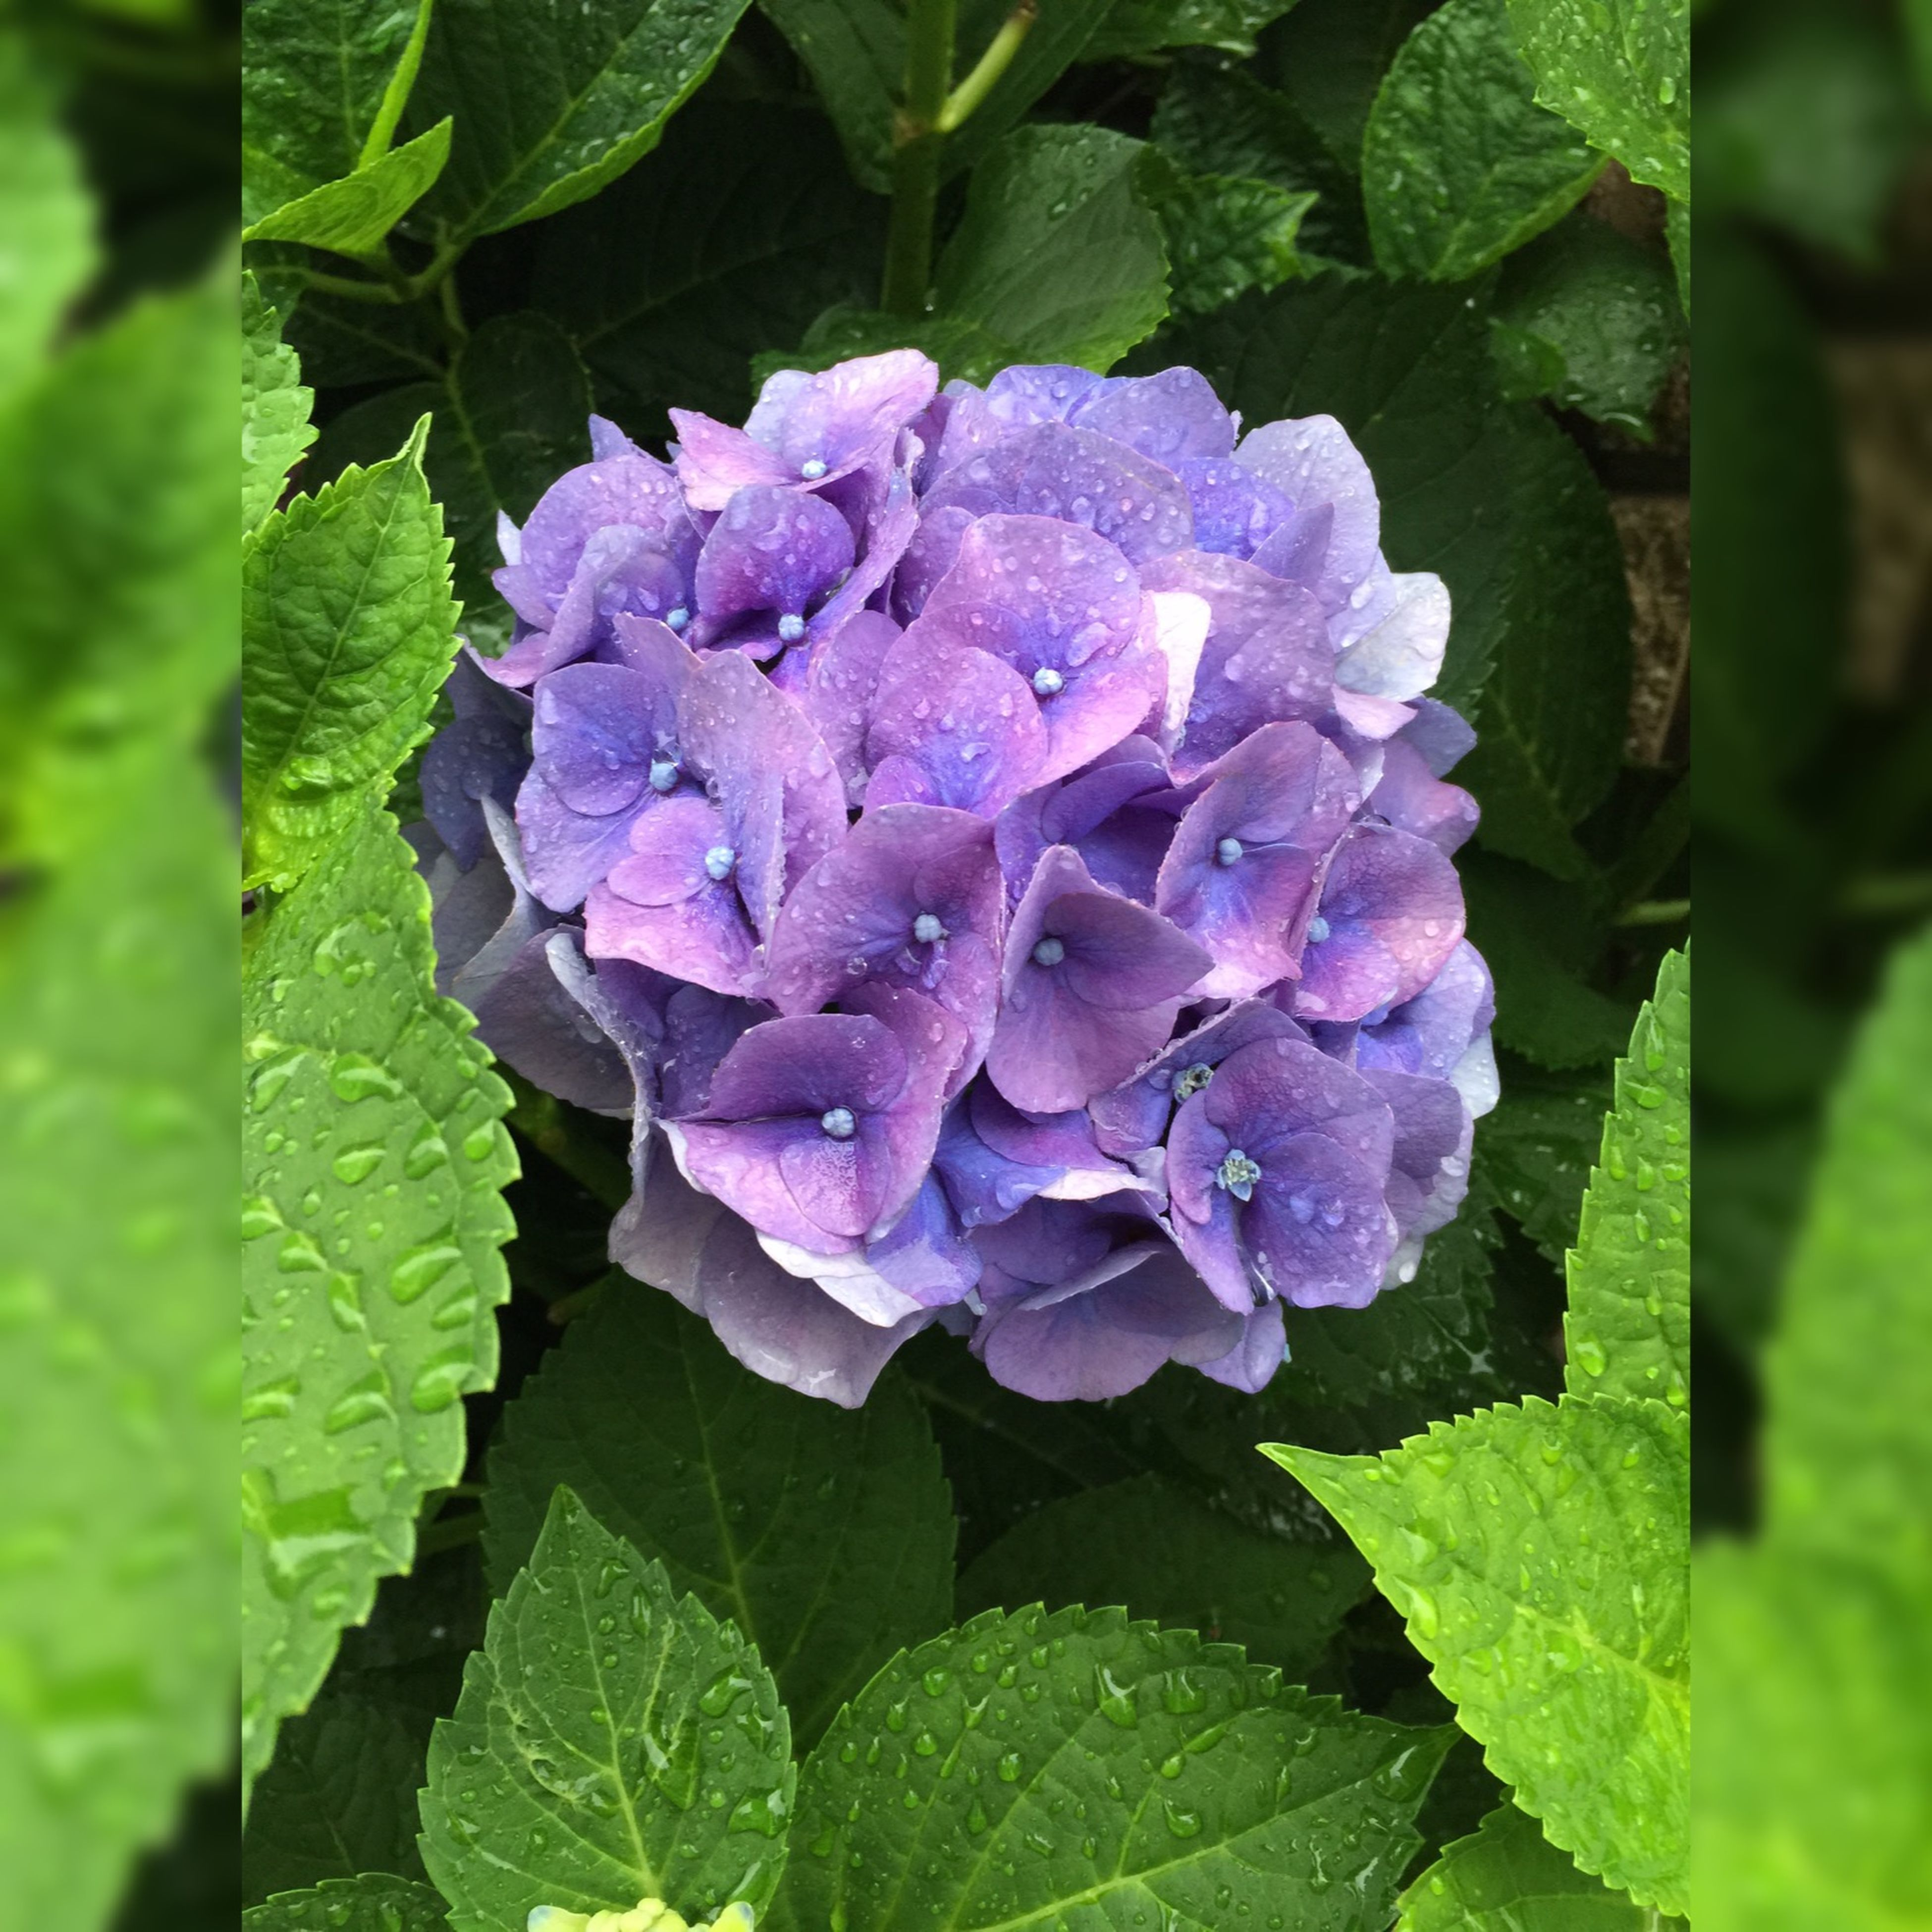 freshness, flower, growth, purple, leaf, fragility, beauty in nature, petal, close-up, flower head, plant, green color, nature, hydrangea, blooming, focus on foreground, drop, in bloom, wet, outdoors